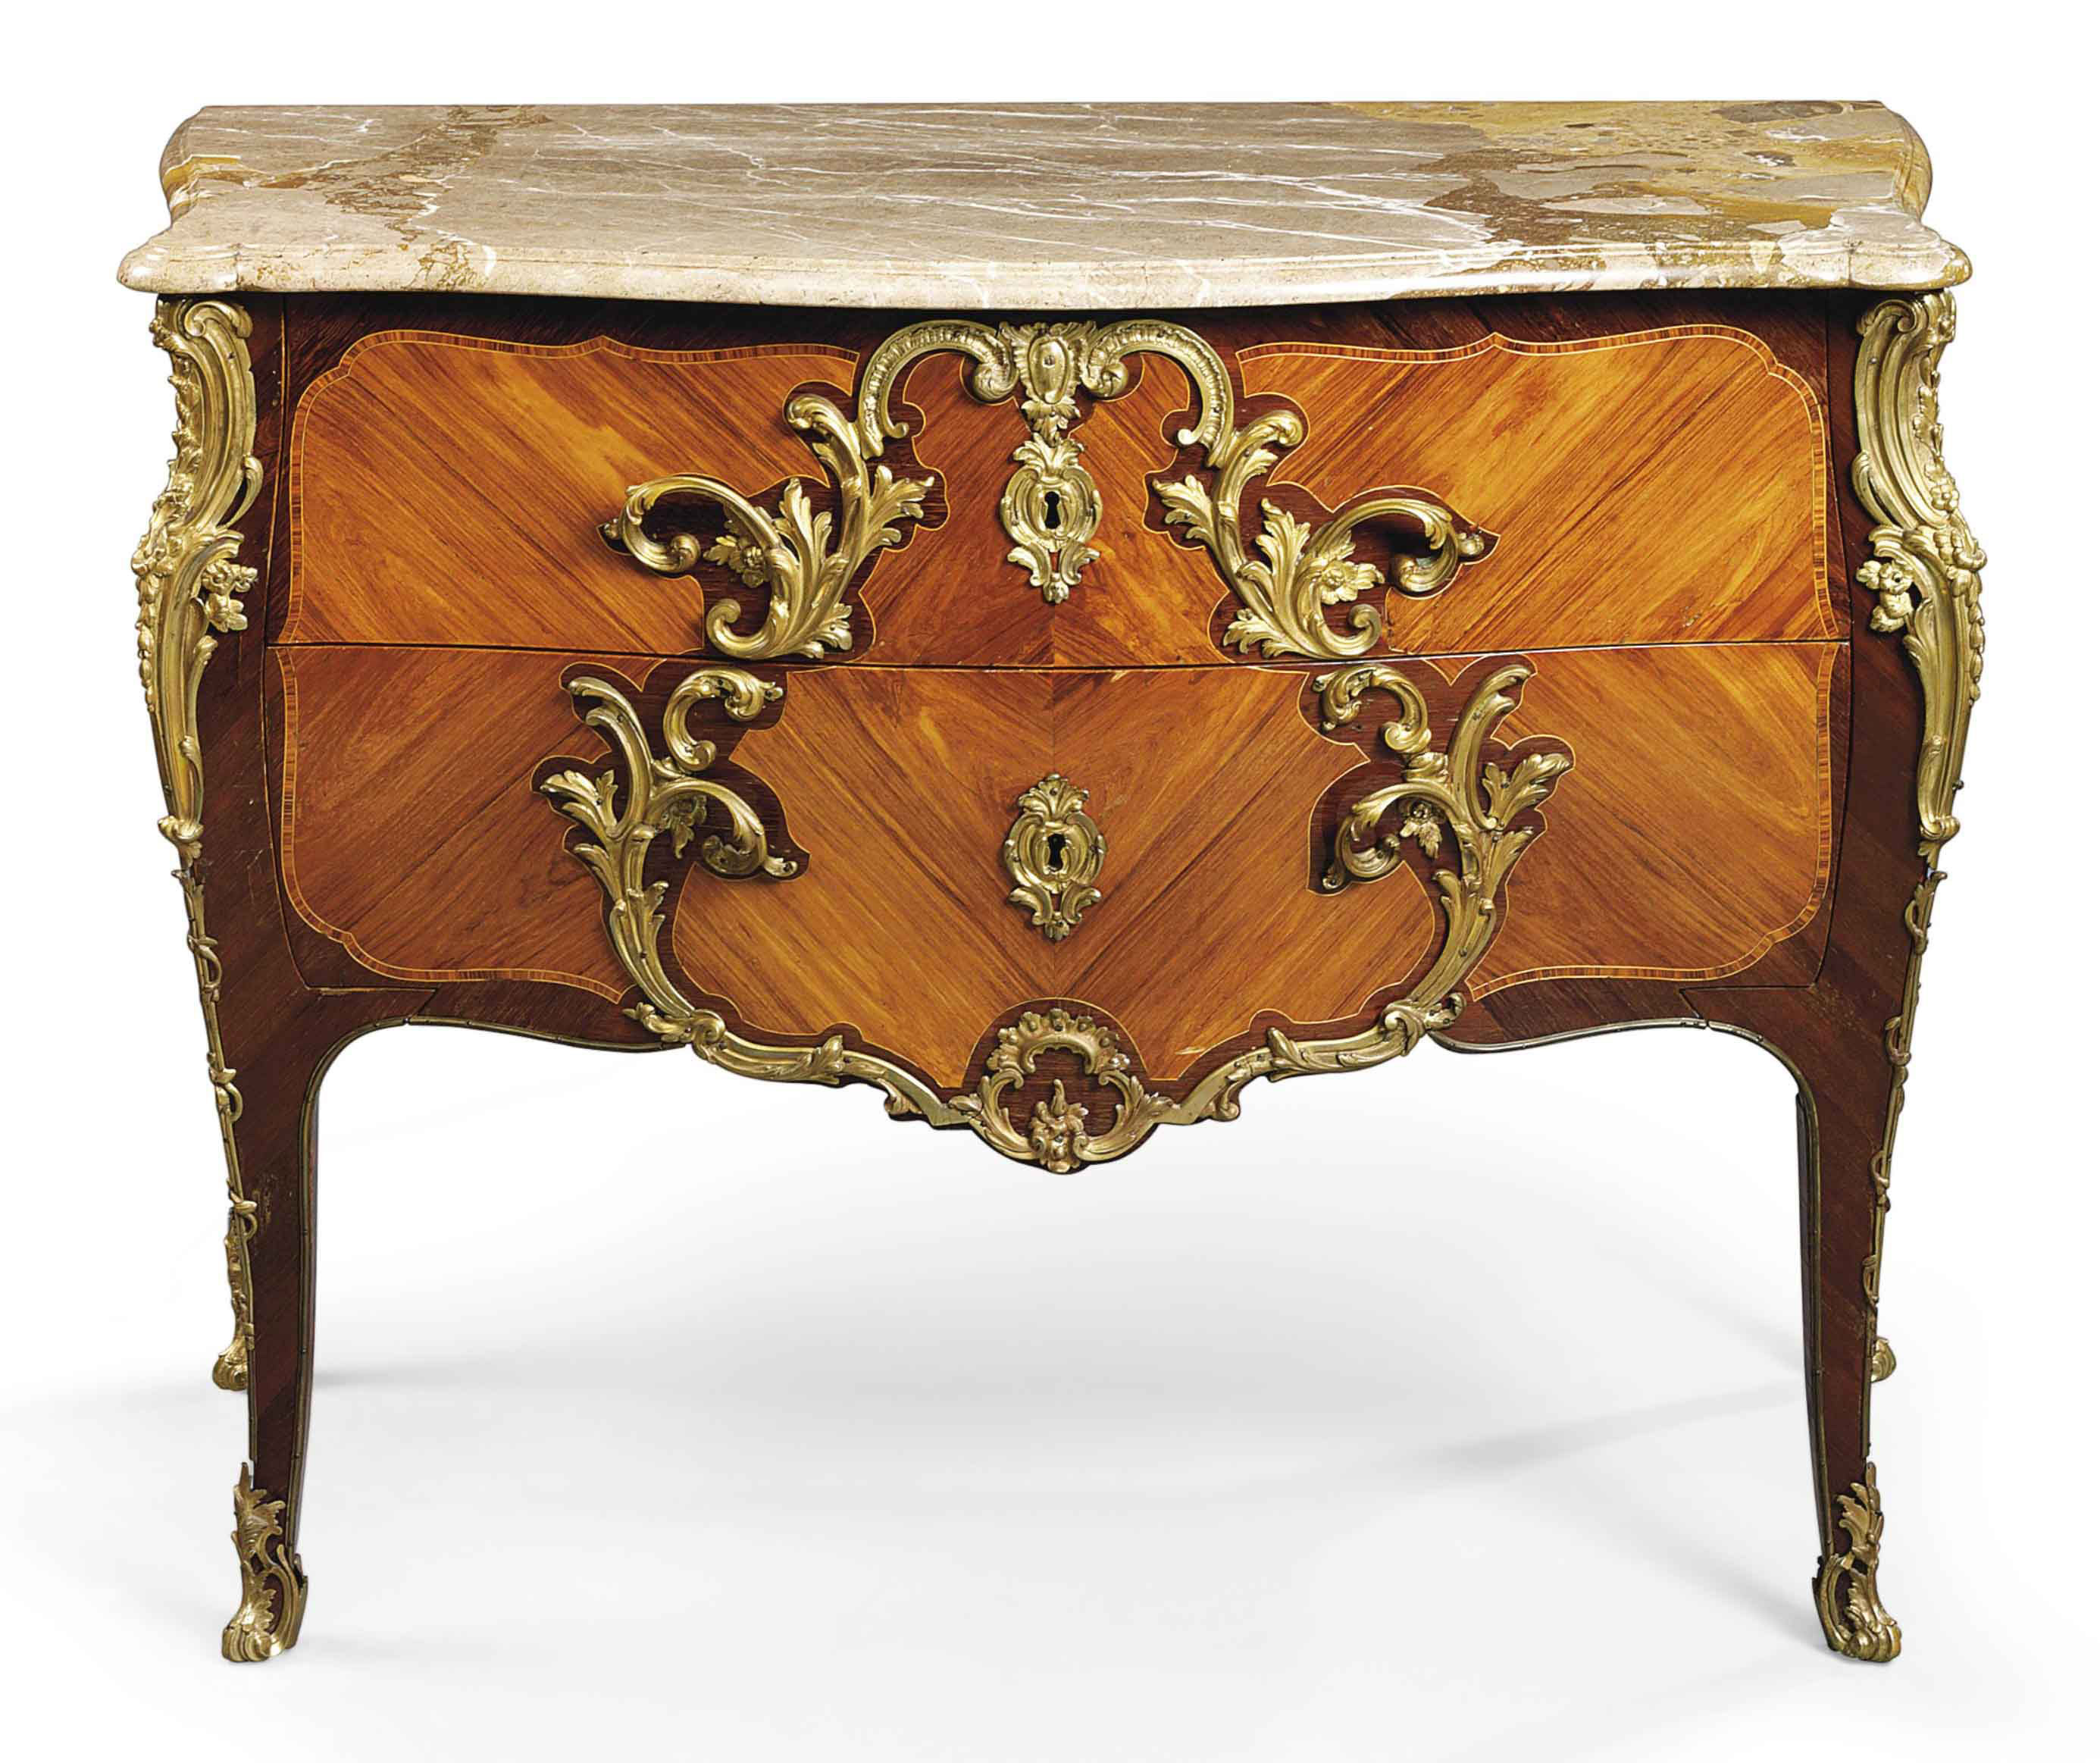 A LOUIS XV ORMOLU-MOUNTED TULIPWOOD AND AMARANTH COMMODE